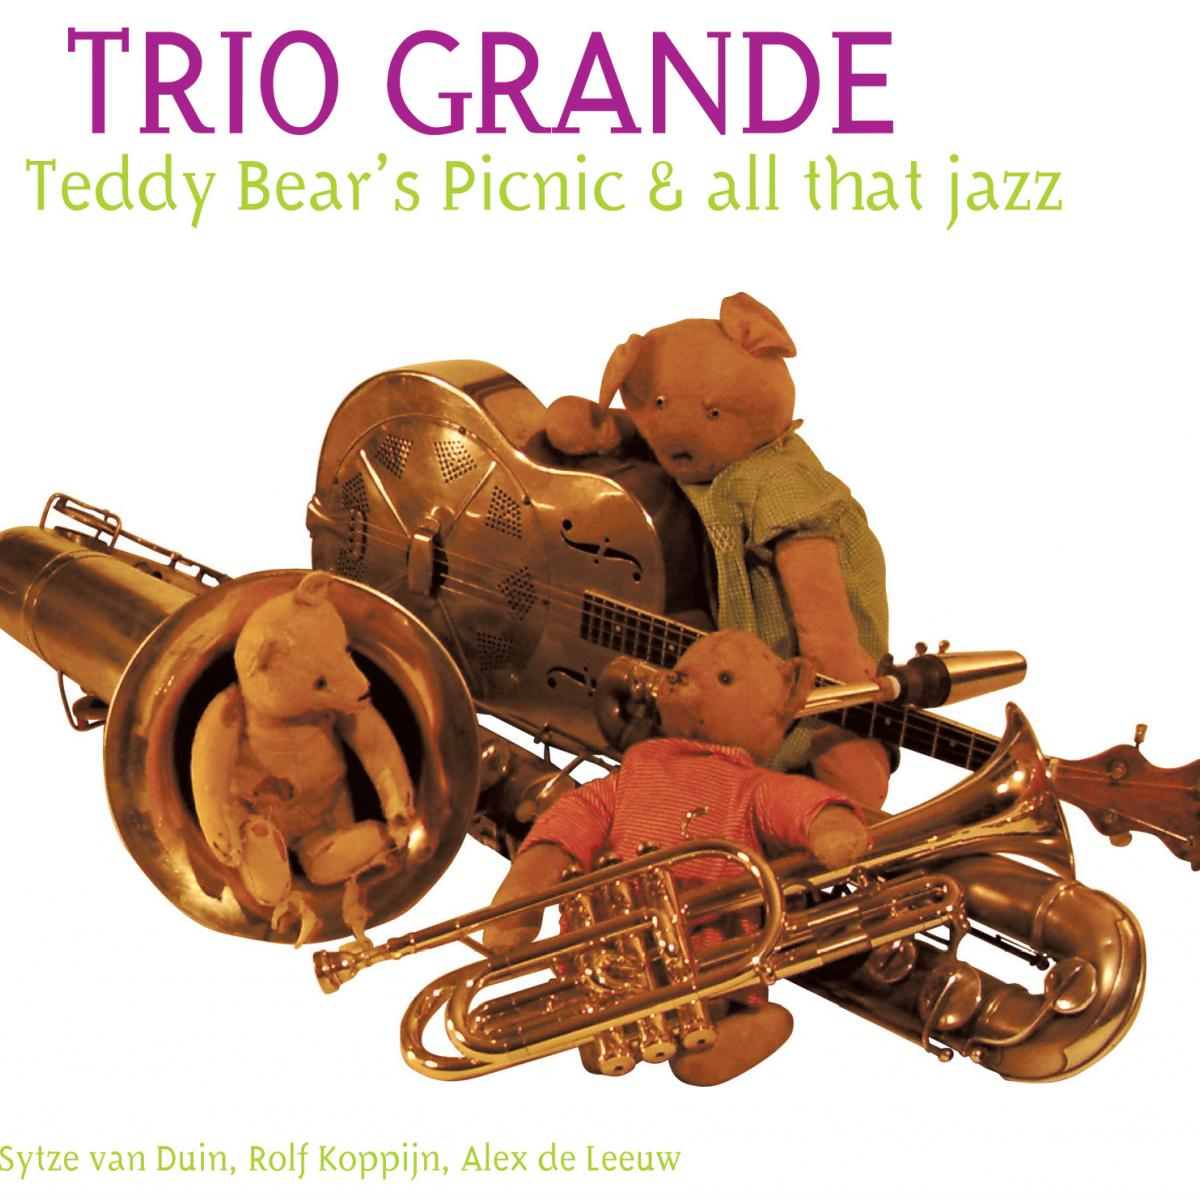 cover van CD: A Teddy Bear's Picninc & All that jazz